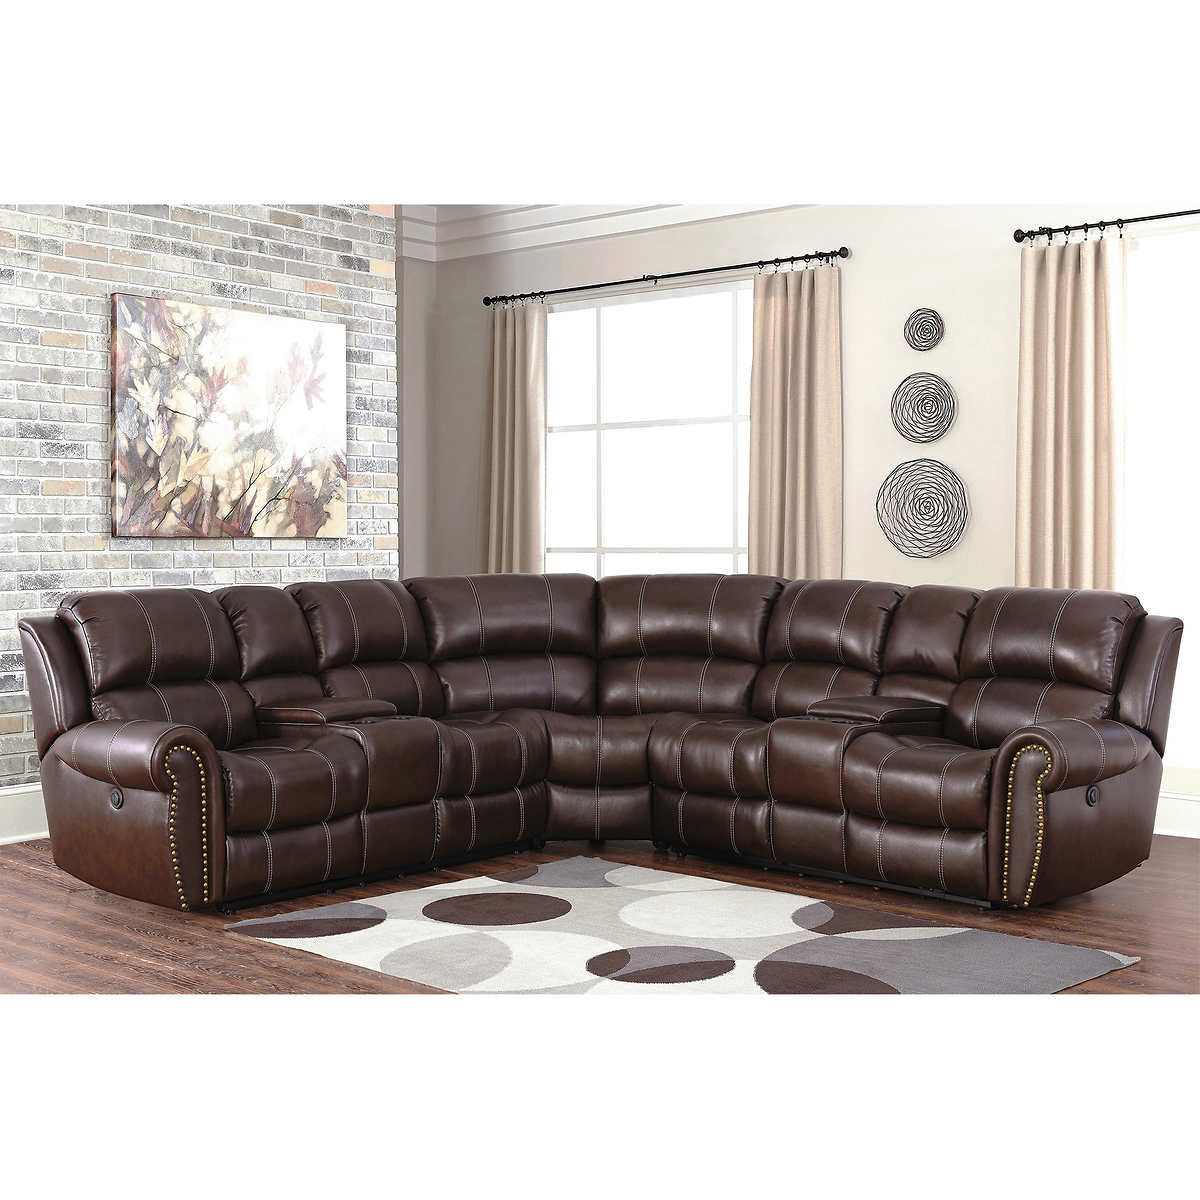 cute power reclining sectional sofa decoration-Finest Power Reclining Sectional sofa Wallpaper